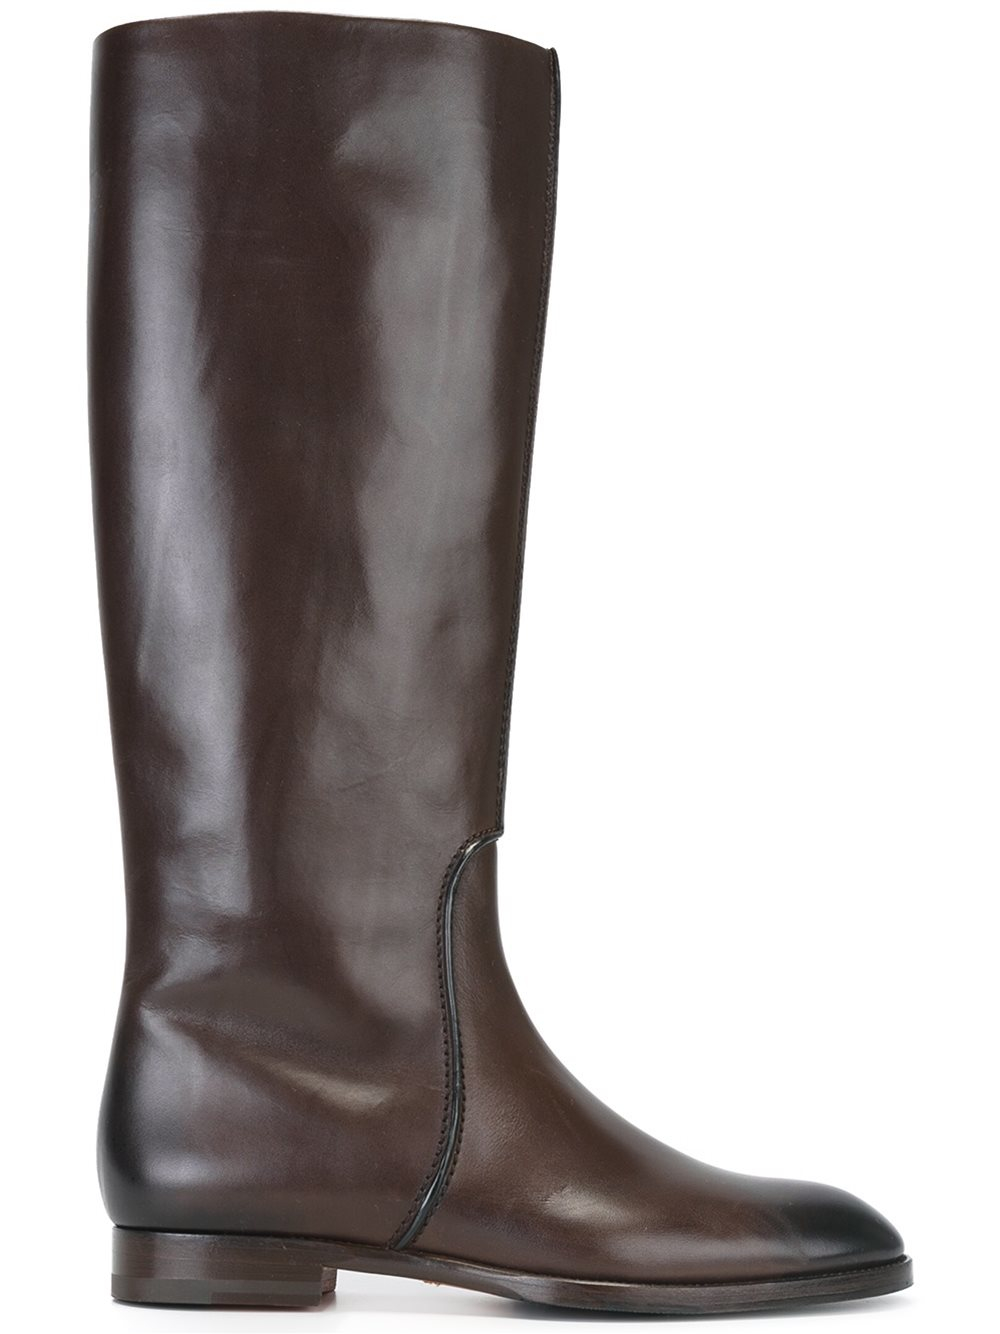 Find stylish Leather Knee High Boots, Suede Knee High Boots and more at Macy's. Macy's Presents: The Edit - A curated mix of fashion and inspiration Check It Out Free Shipping with $99 purchase + .